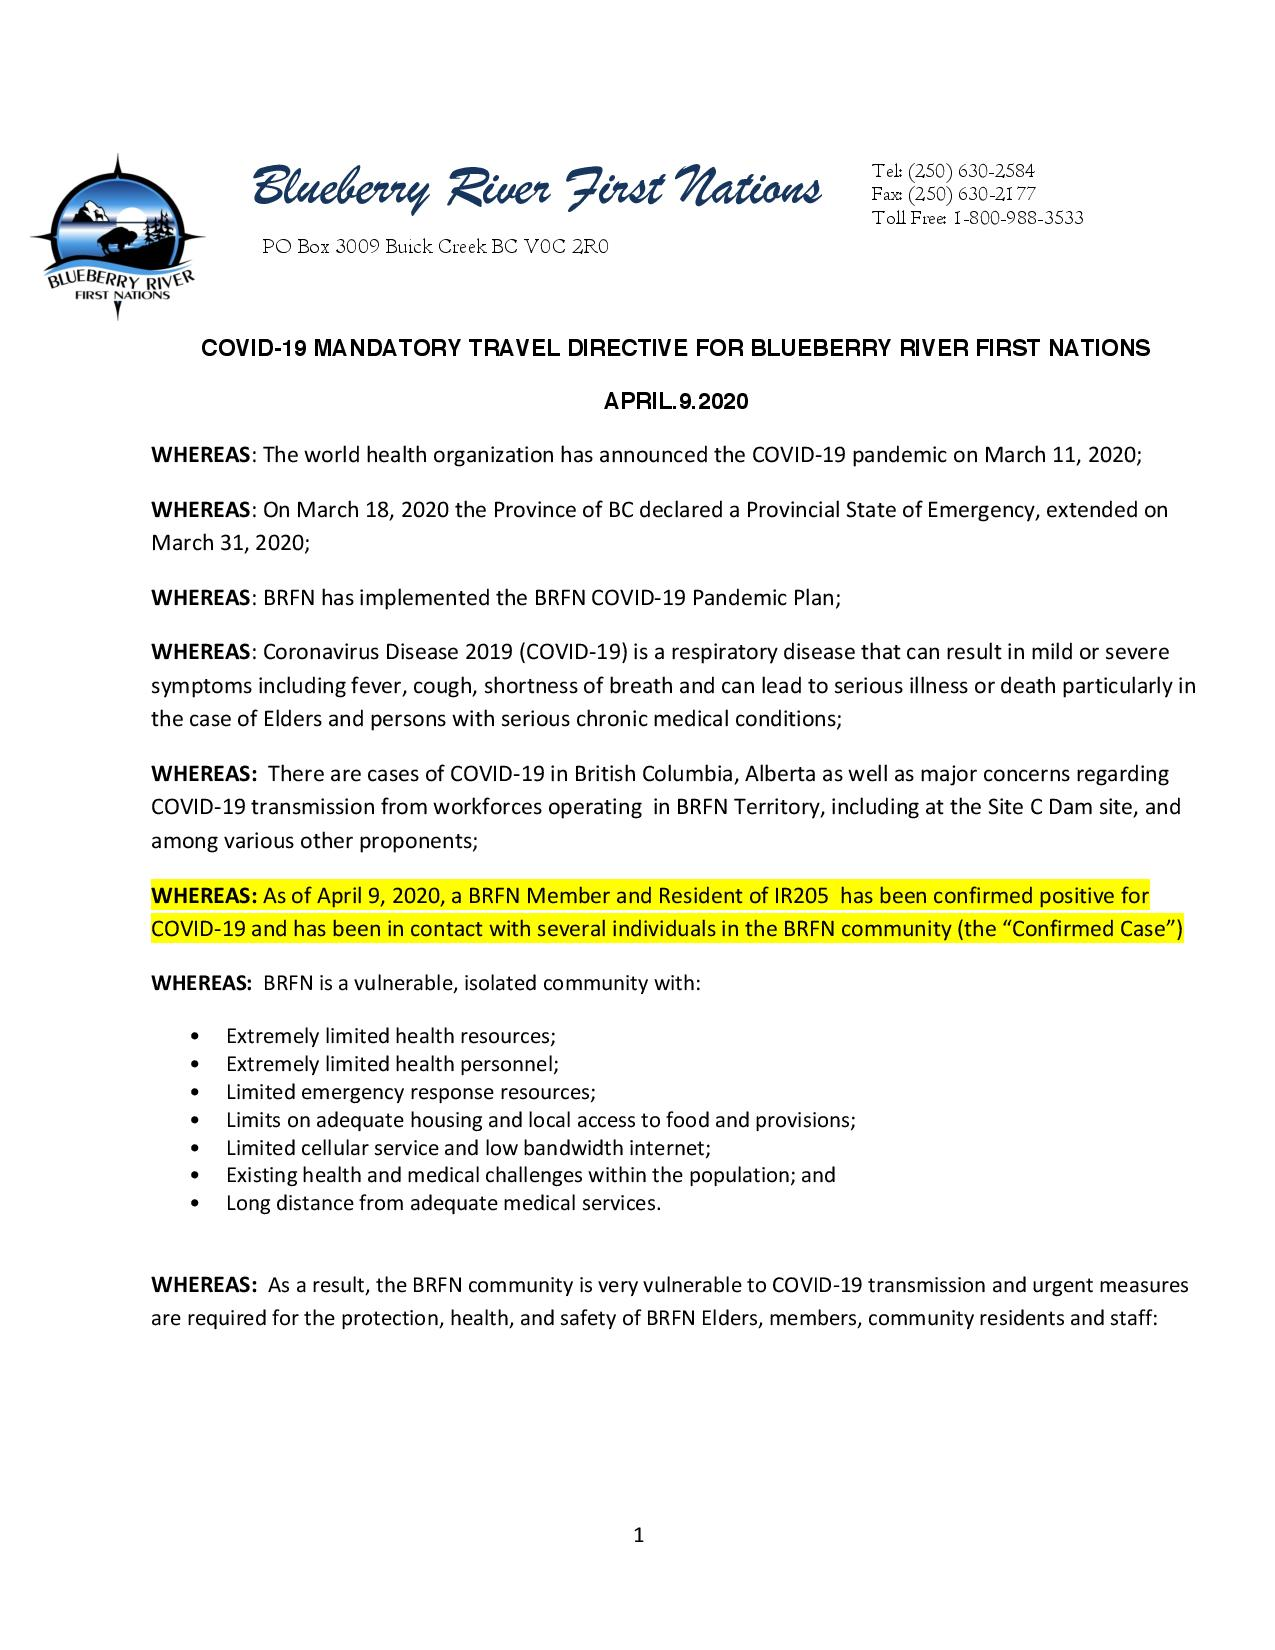 PAGE 1- 2020-04-08 BRFN Travel Advisory Amended Apr.9.20 re Outbreak in the Community FINAL